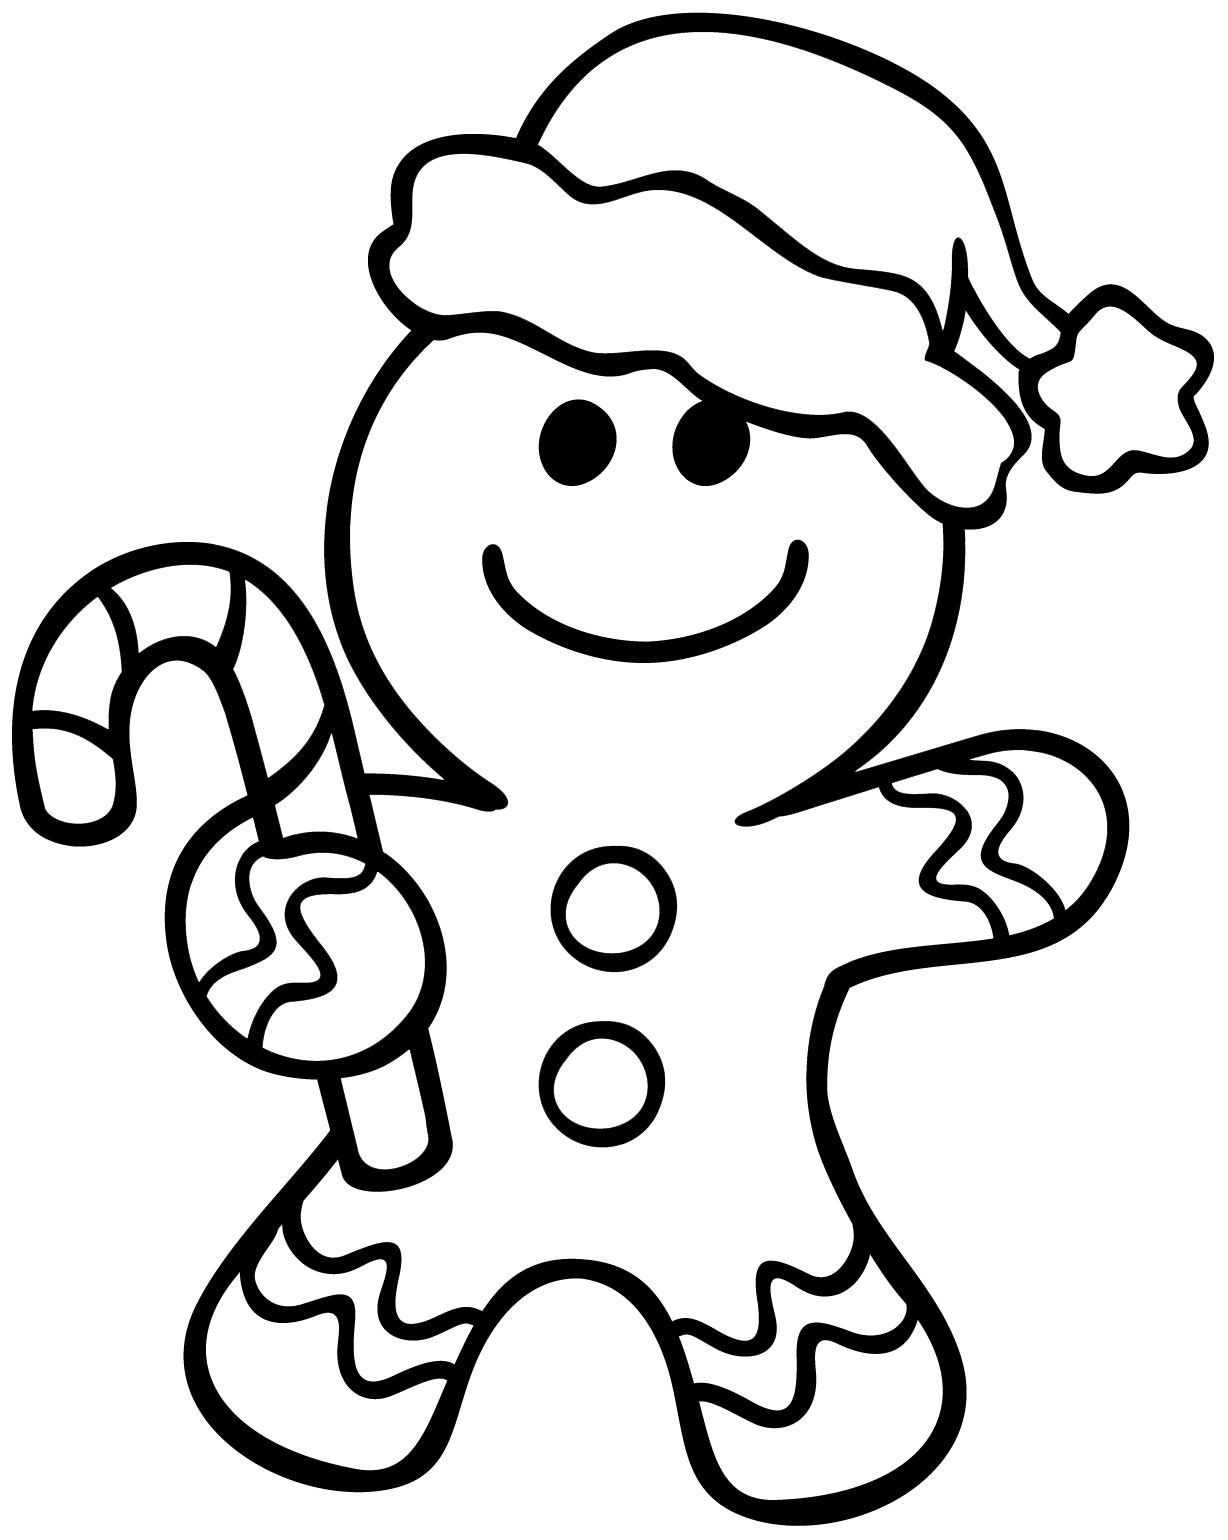 Clipart people easy. Ginger man coloring page